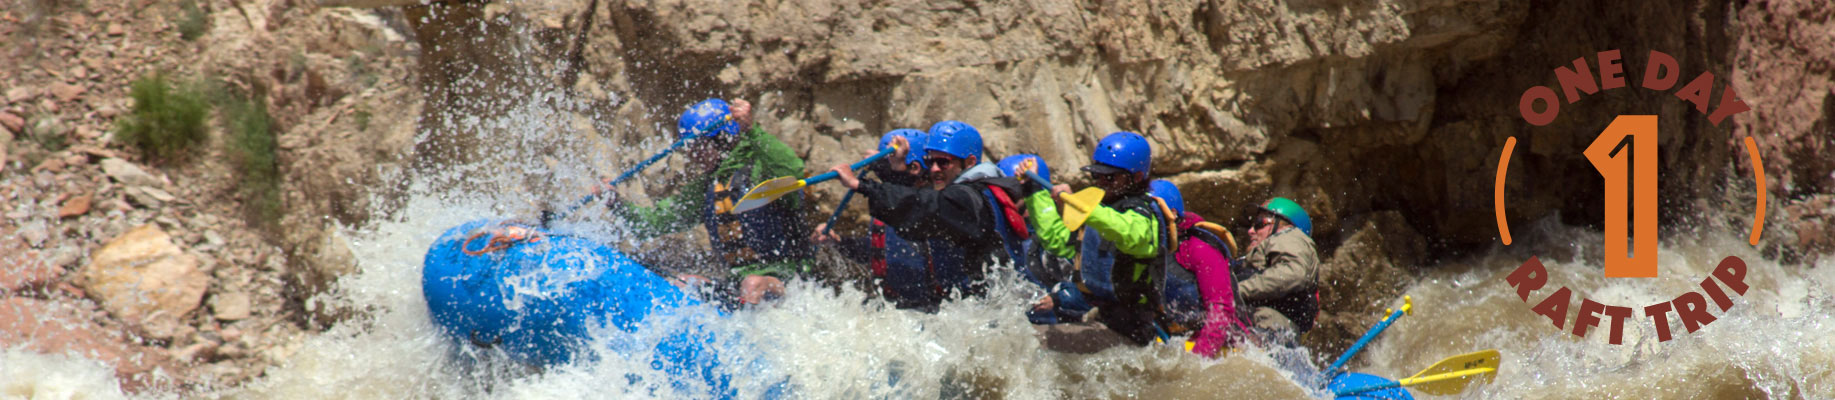 Green River Rafting Daily-photo